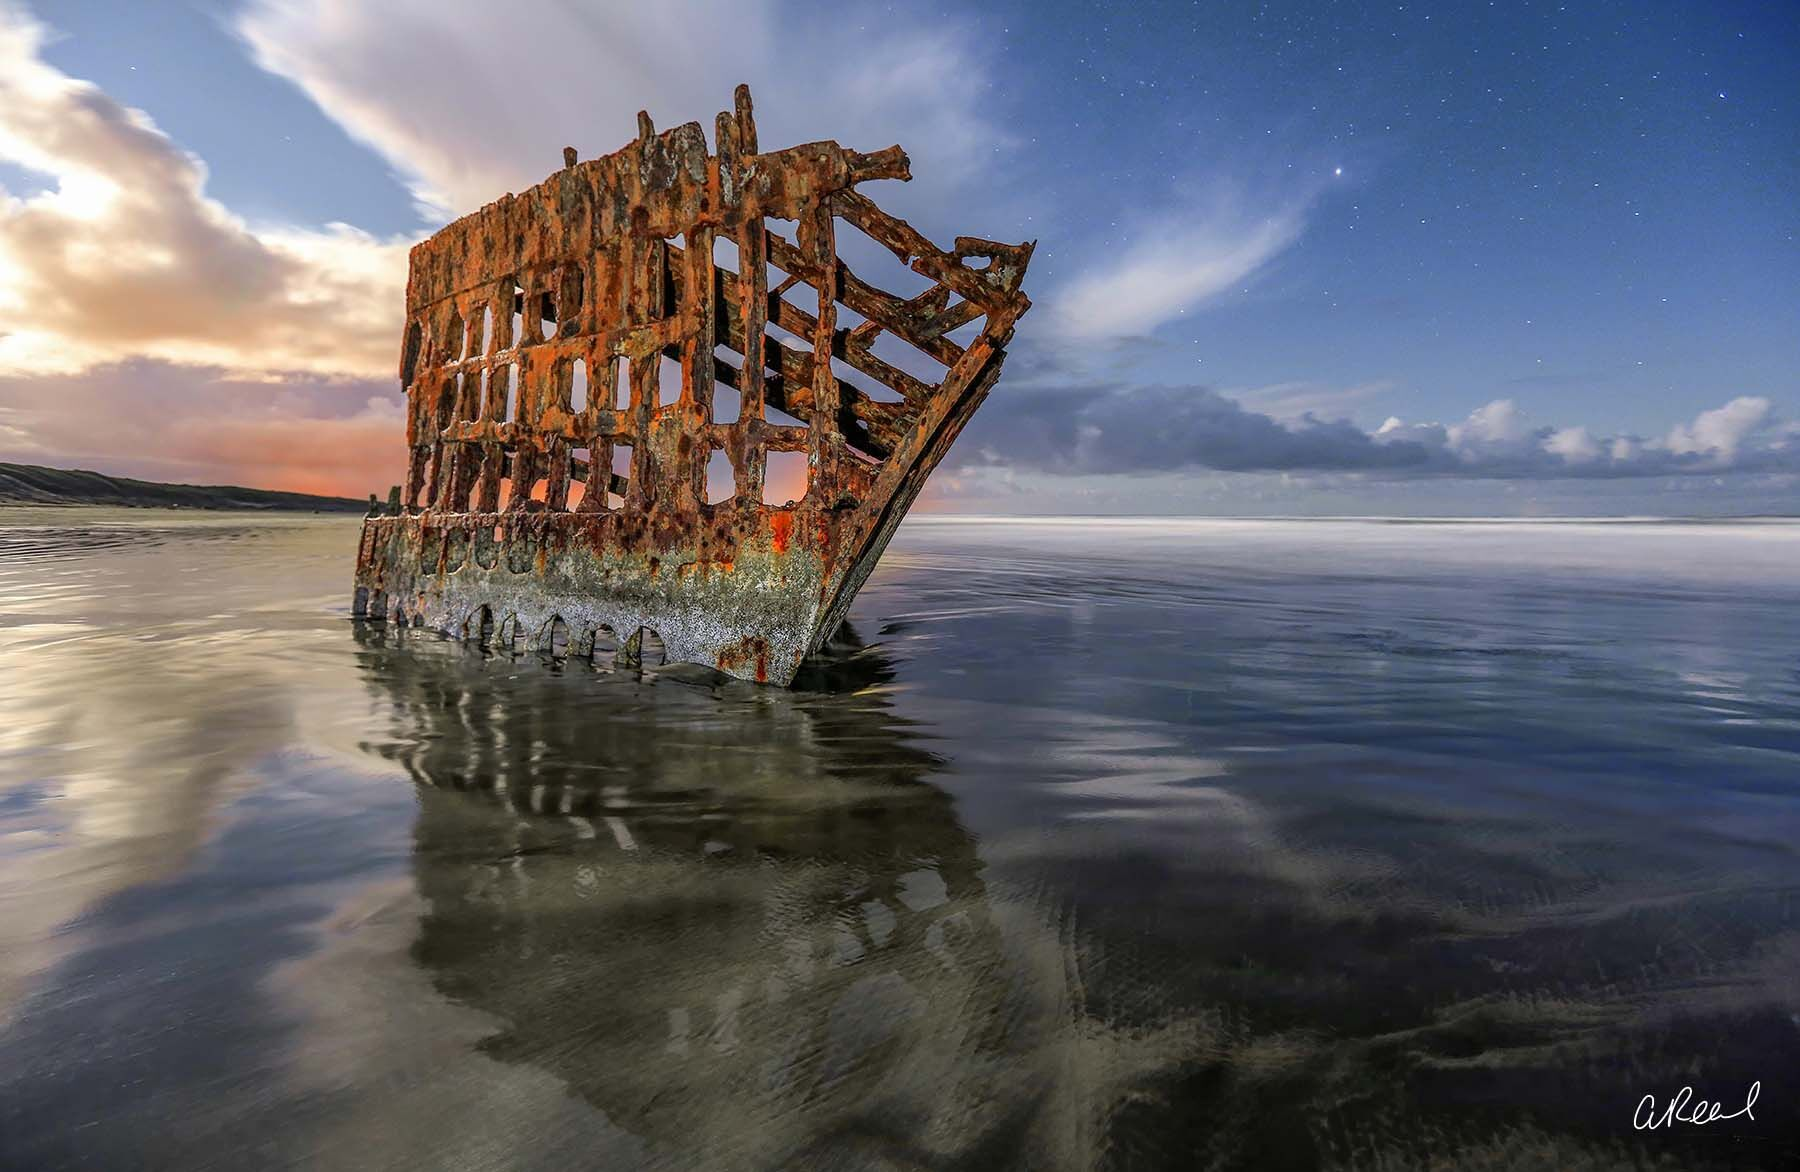 Peter Iredale, Shipwreck, Oregon, Hammond, Coast, Graveyard, Pacific, Fine Art, Night, Stars, Limited Edition, , photo